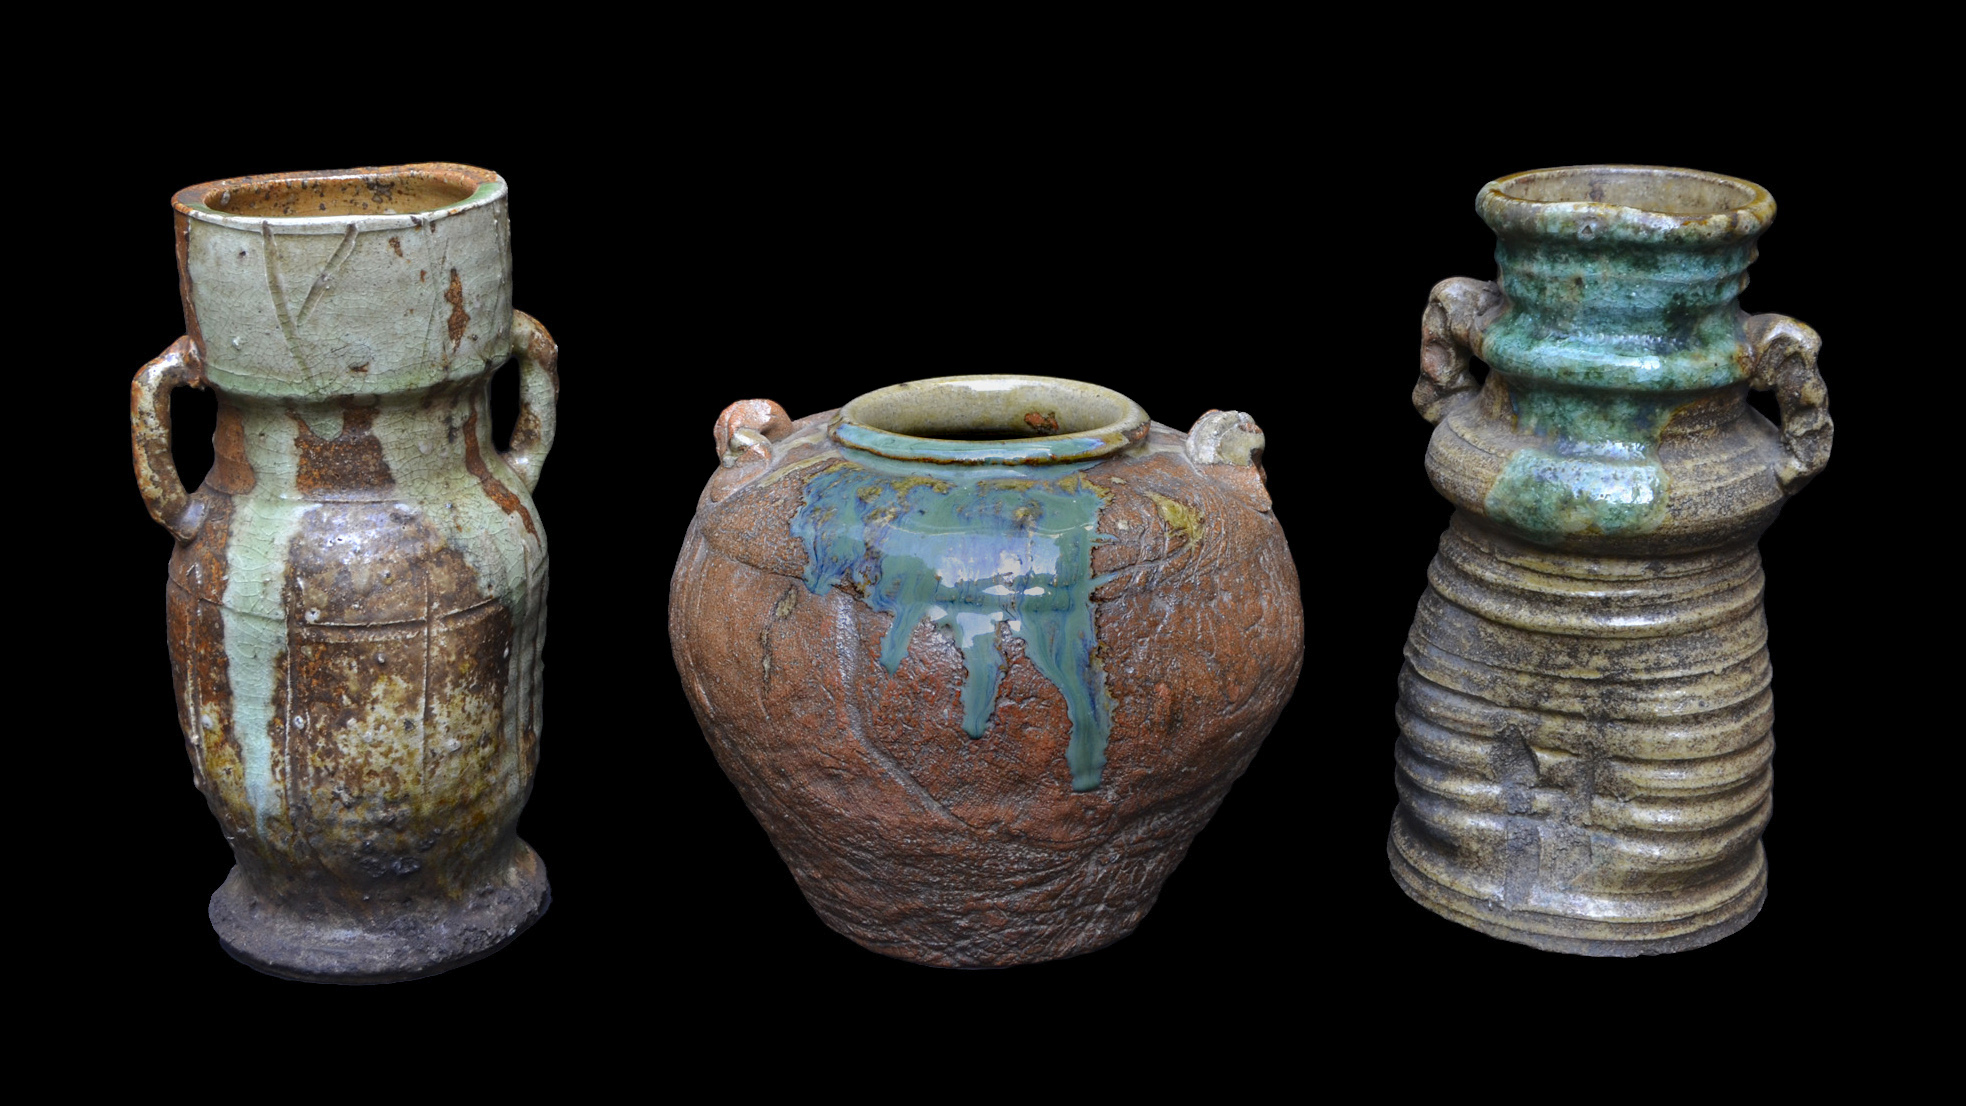 A Collection of Three Fine Old Shigaraki Vases from Japan